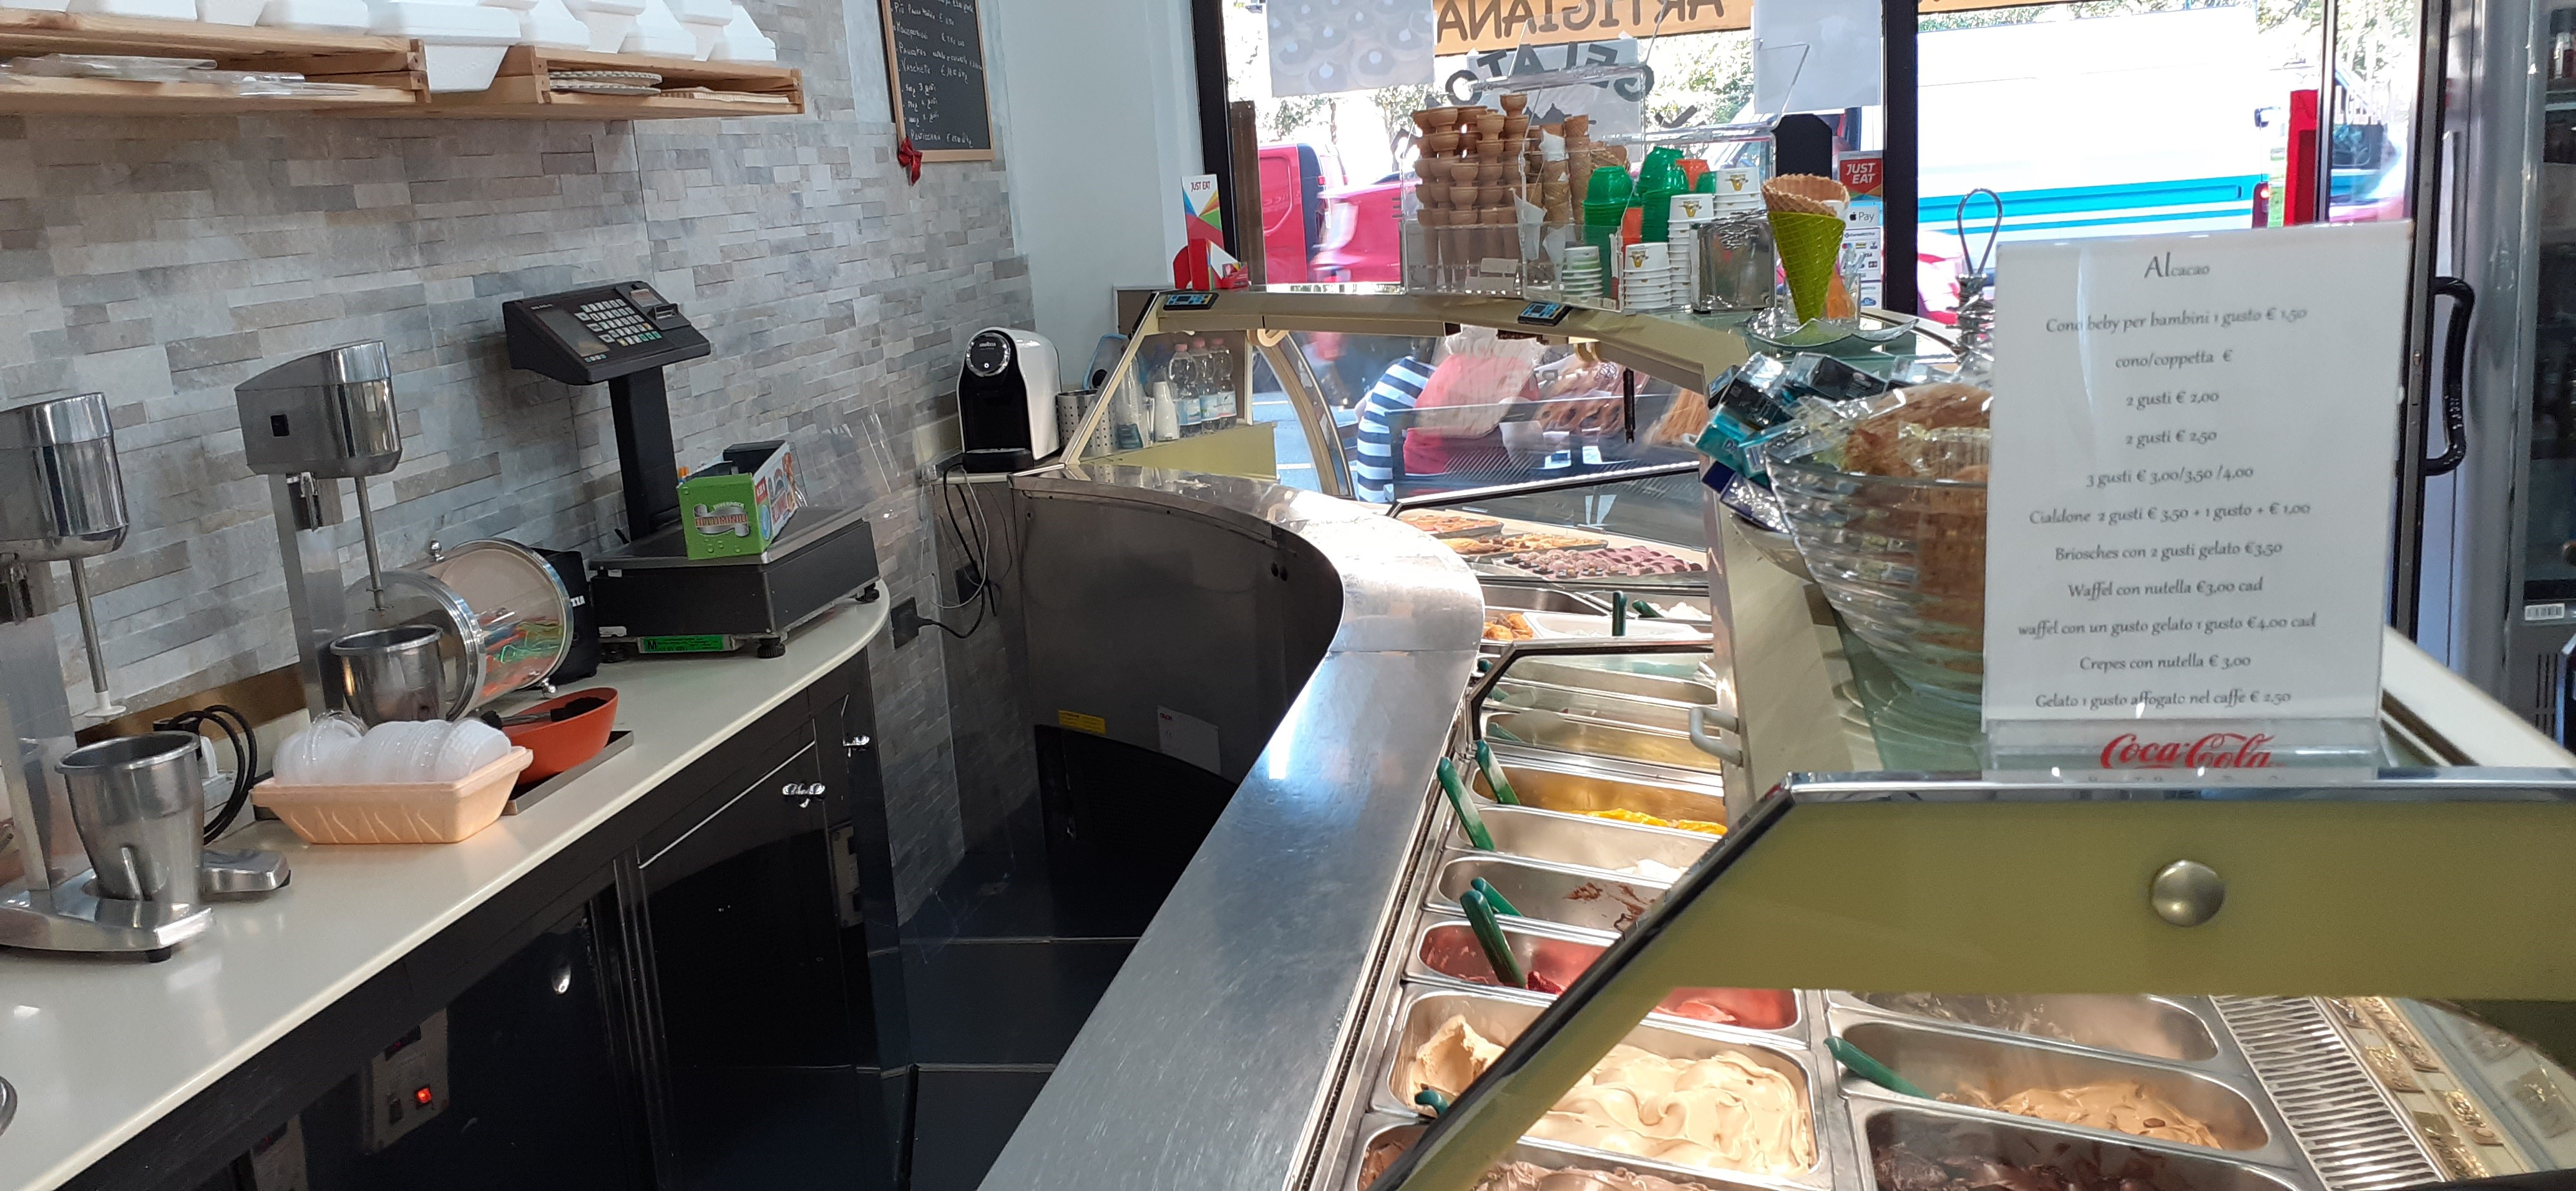 Gelateria bar Cologno M.se